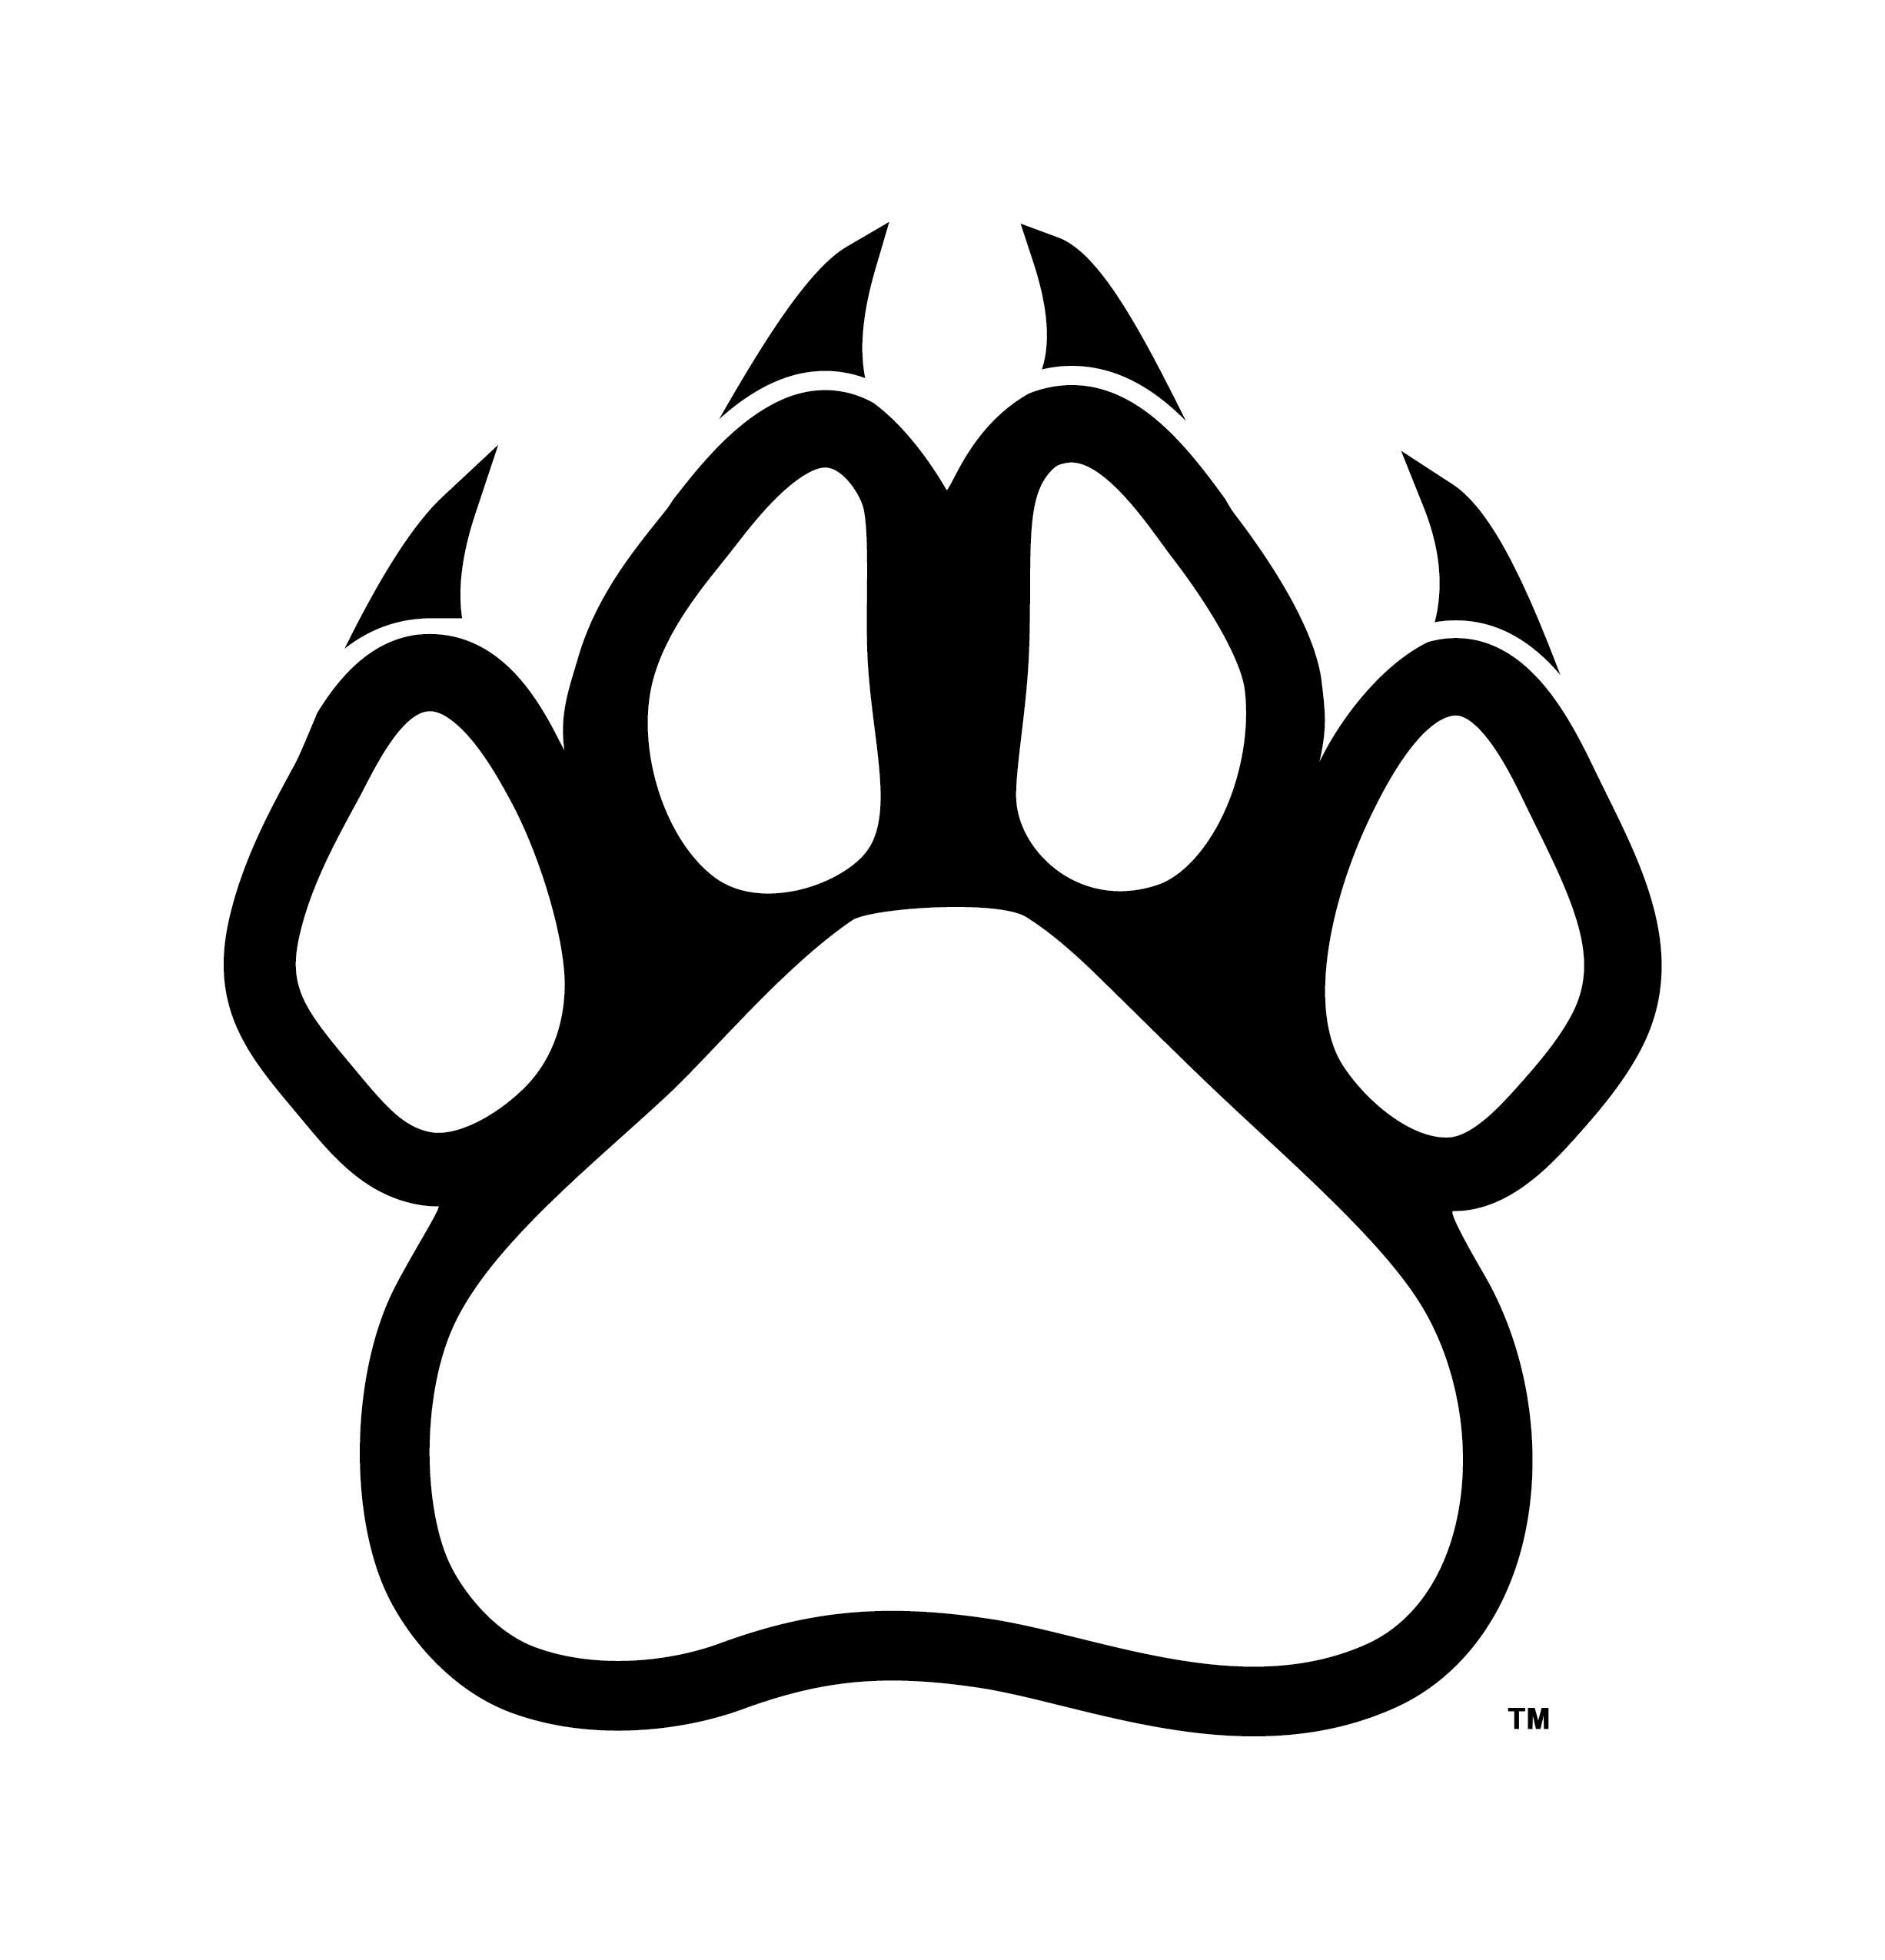 37 Panther Paw Prints Free Cliparts That You Can Download To You